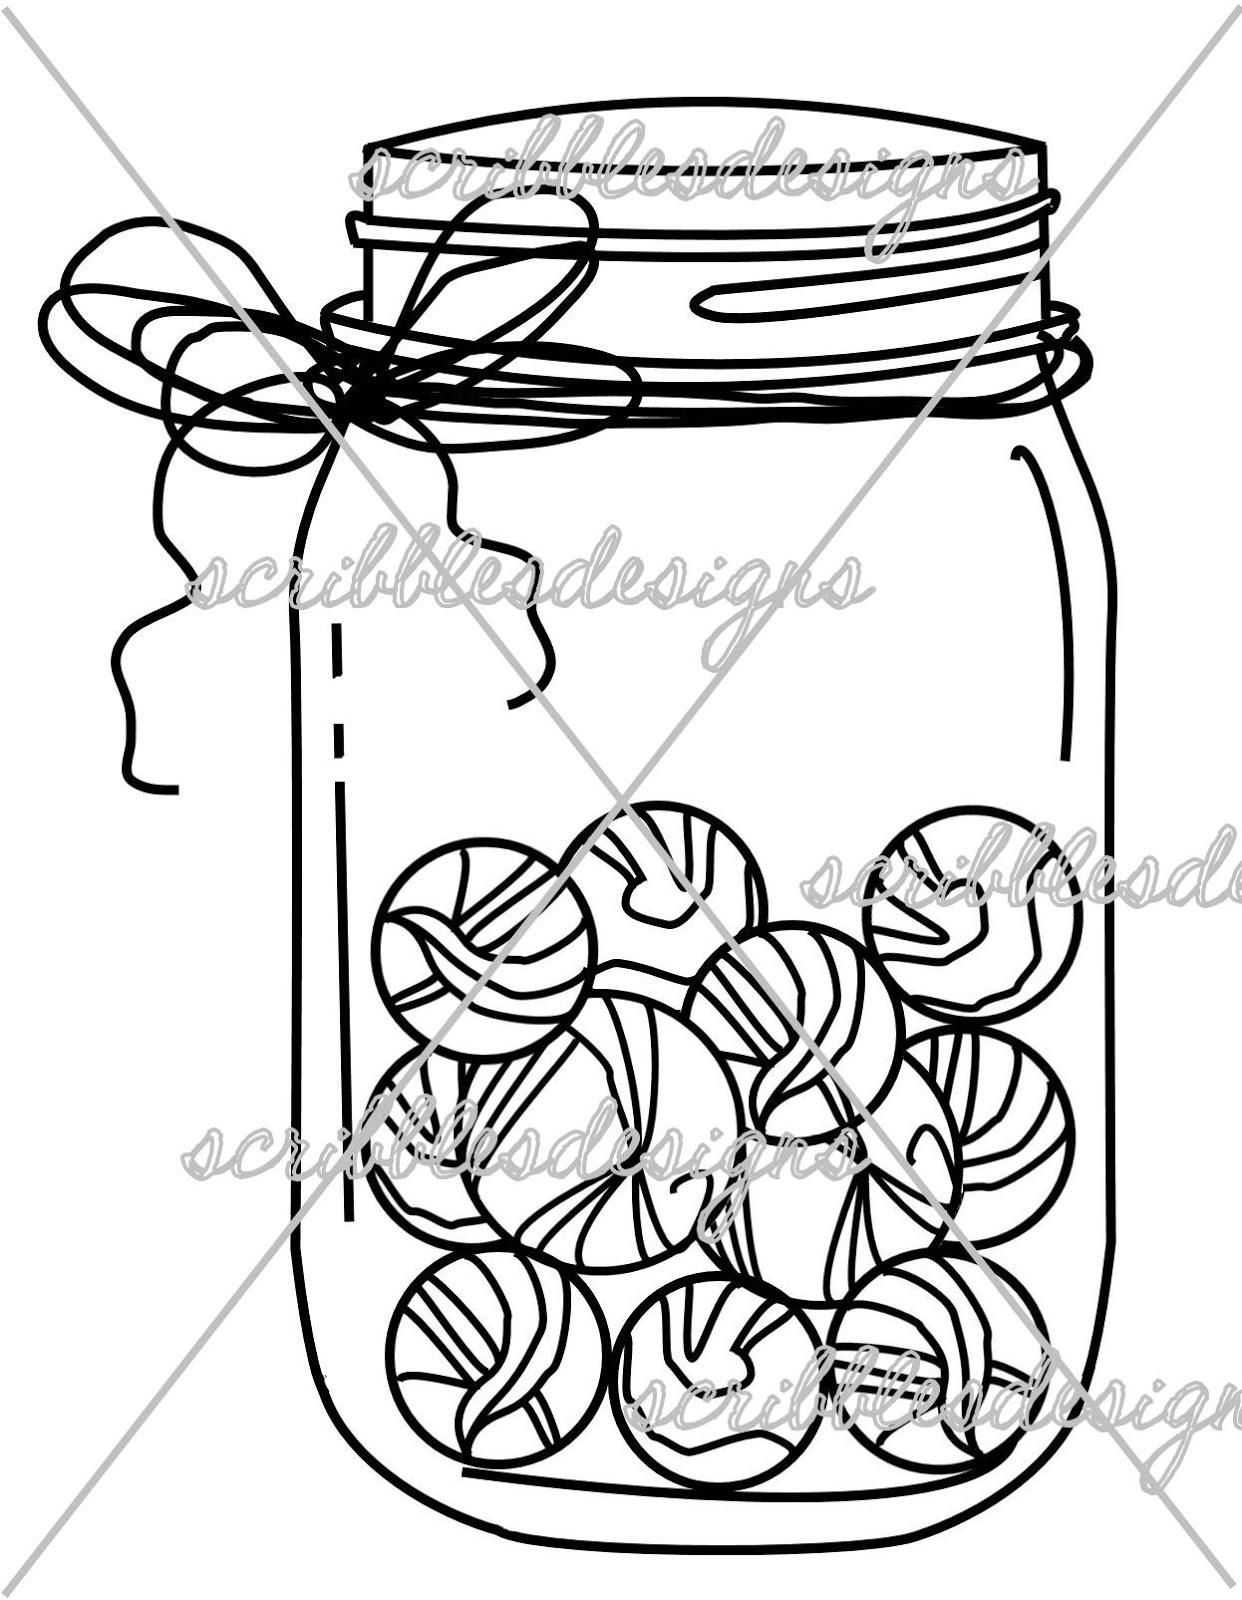 Firefly coloring page 7257866 - datu-mo.info